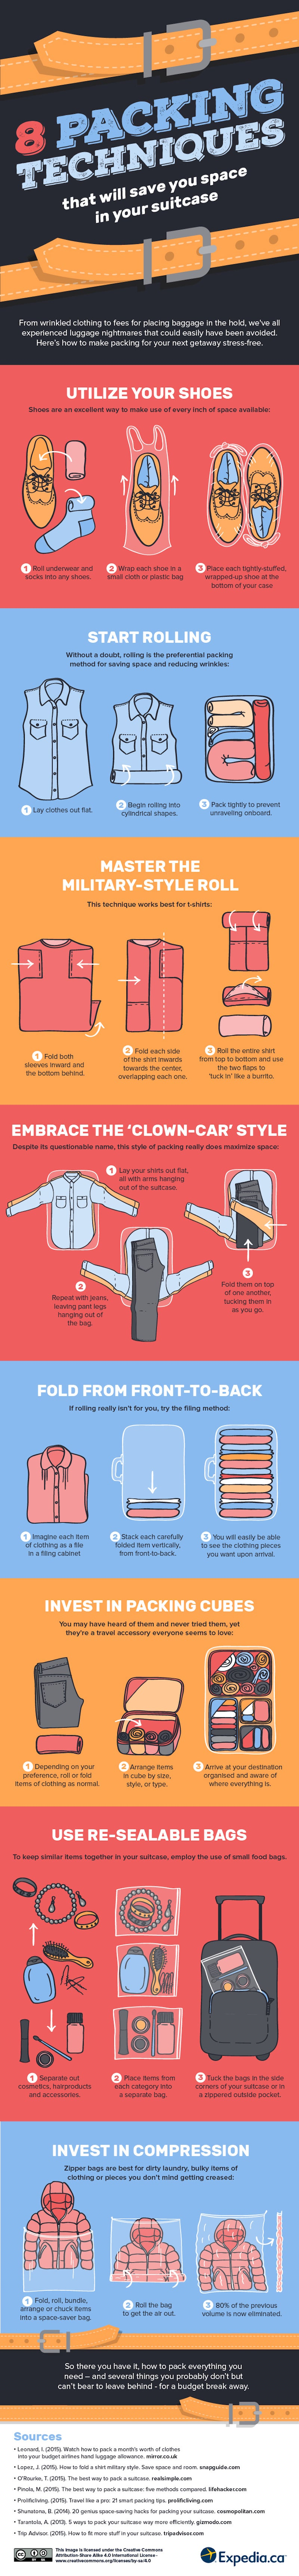 These Packing Techniques Save Space and Let You Carry More